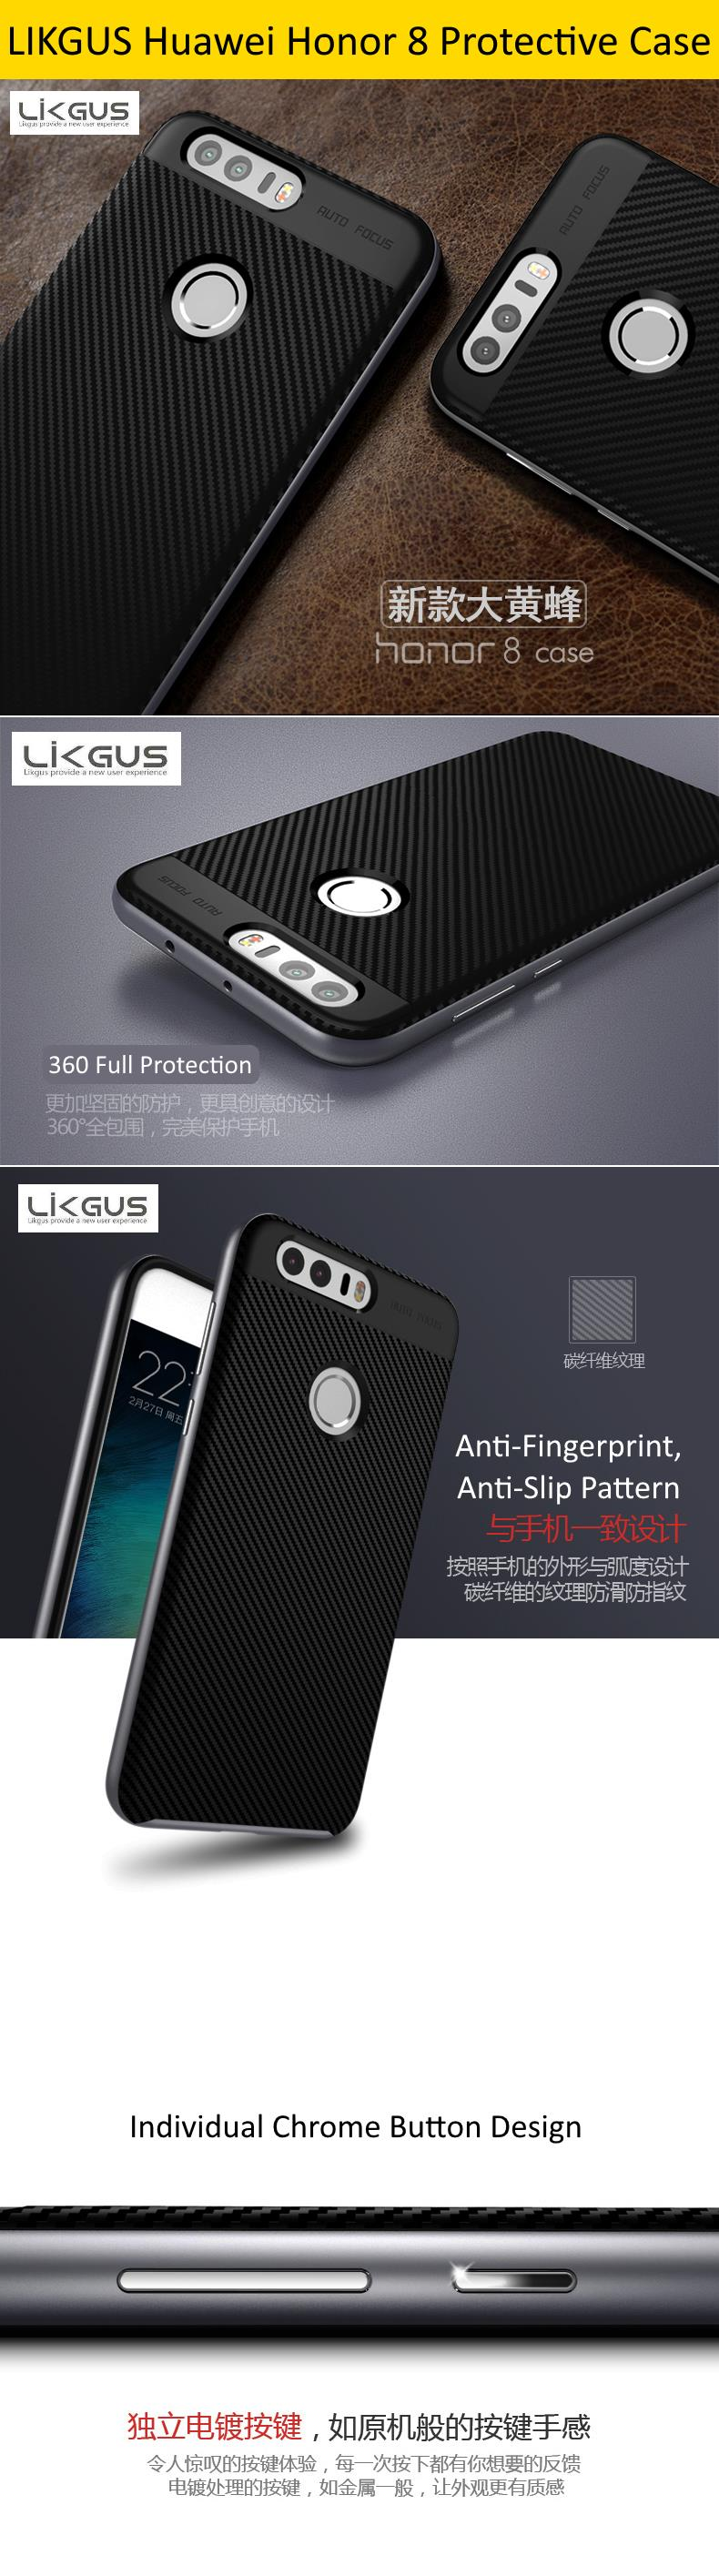 Likgus Huawei Honor 8 TPU+PC Slim Fit Protective Case